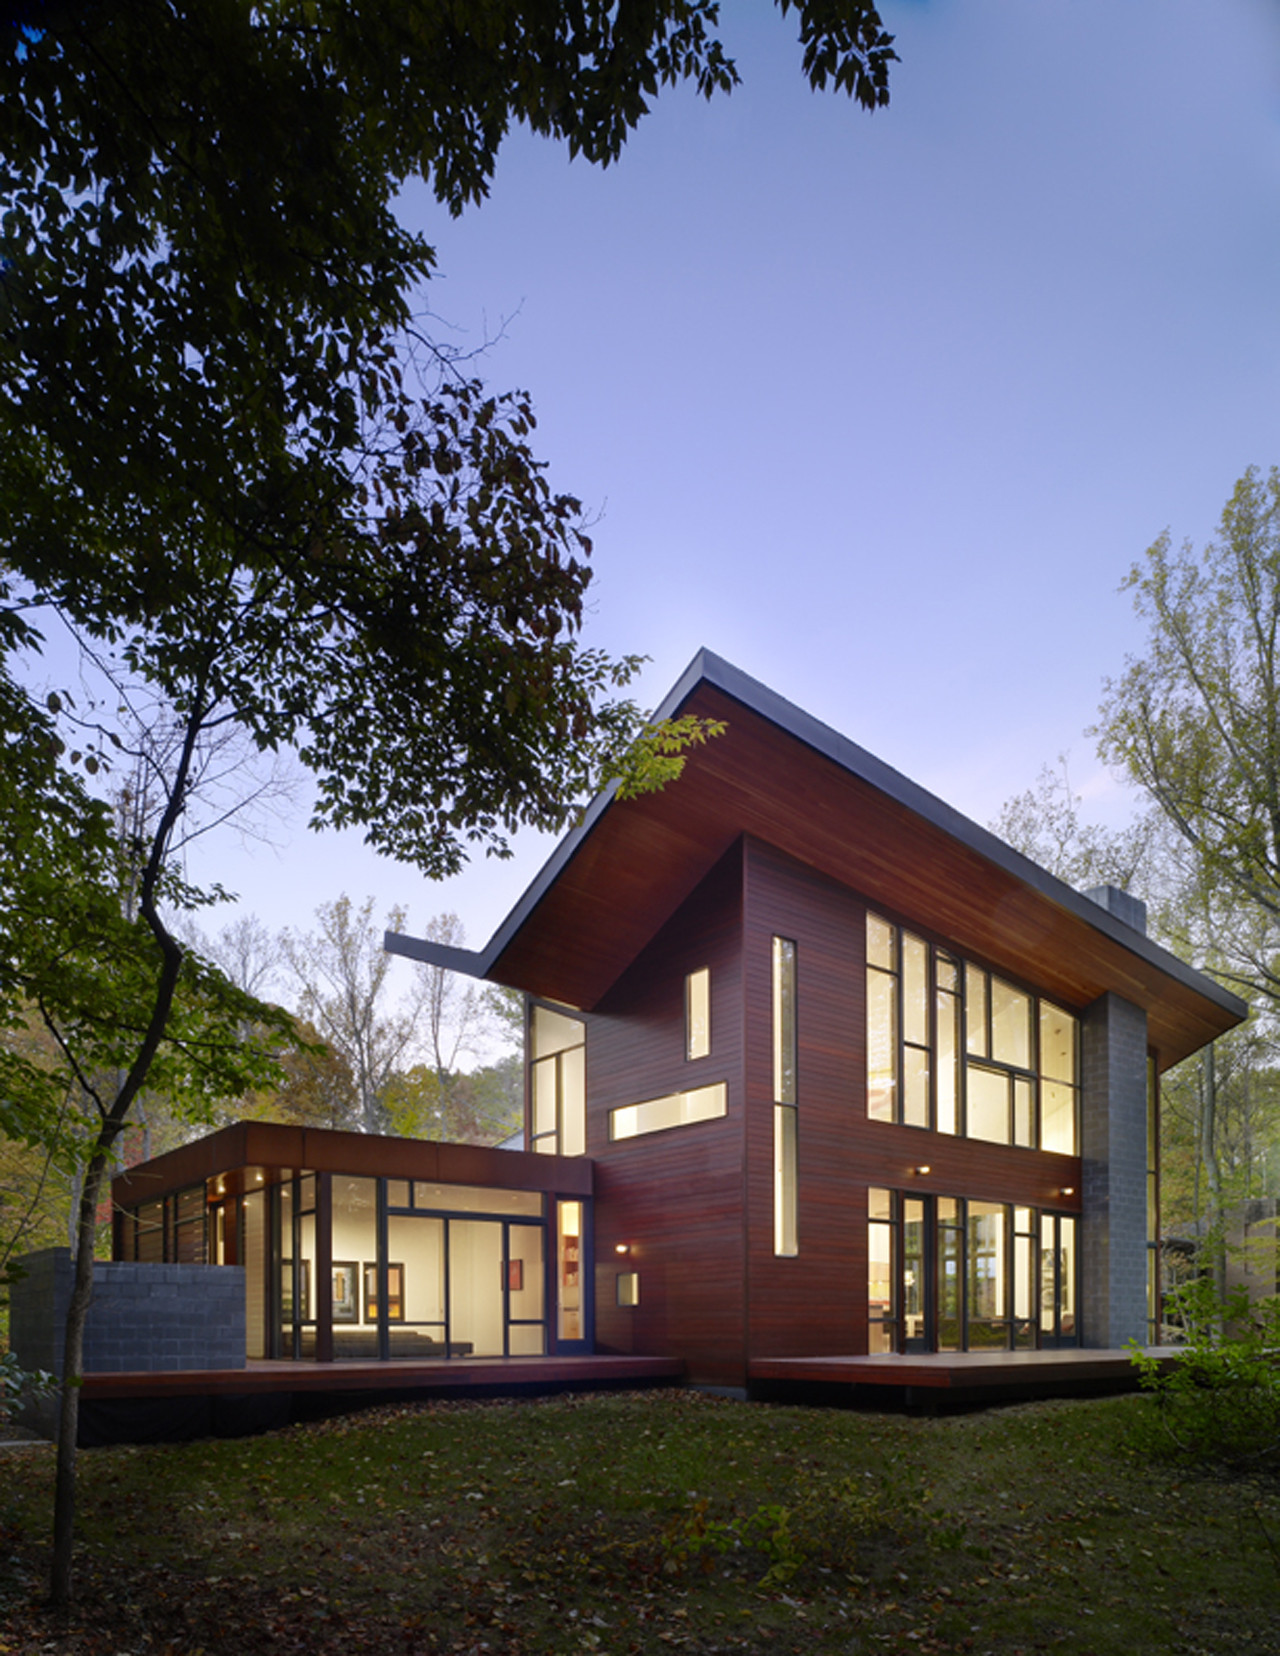 Harkavy Residence / Robert Gurney Architect, © Anice Hoachlander | HD Photo